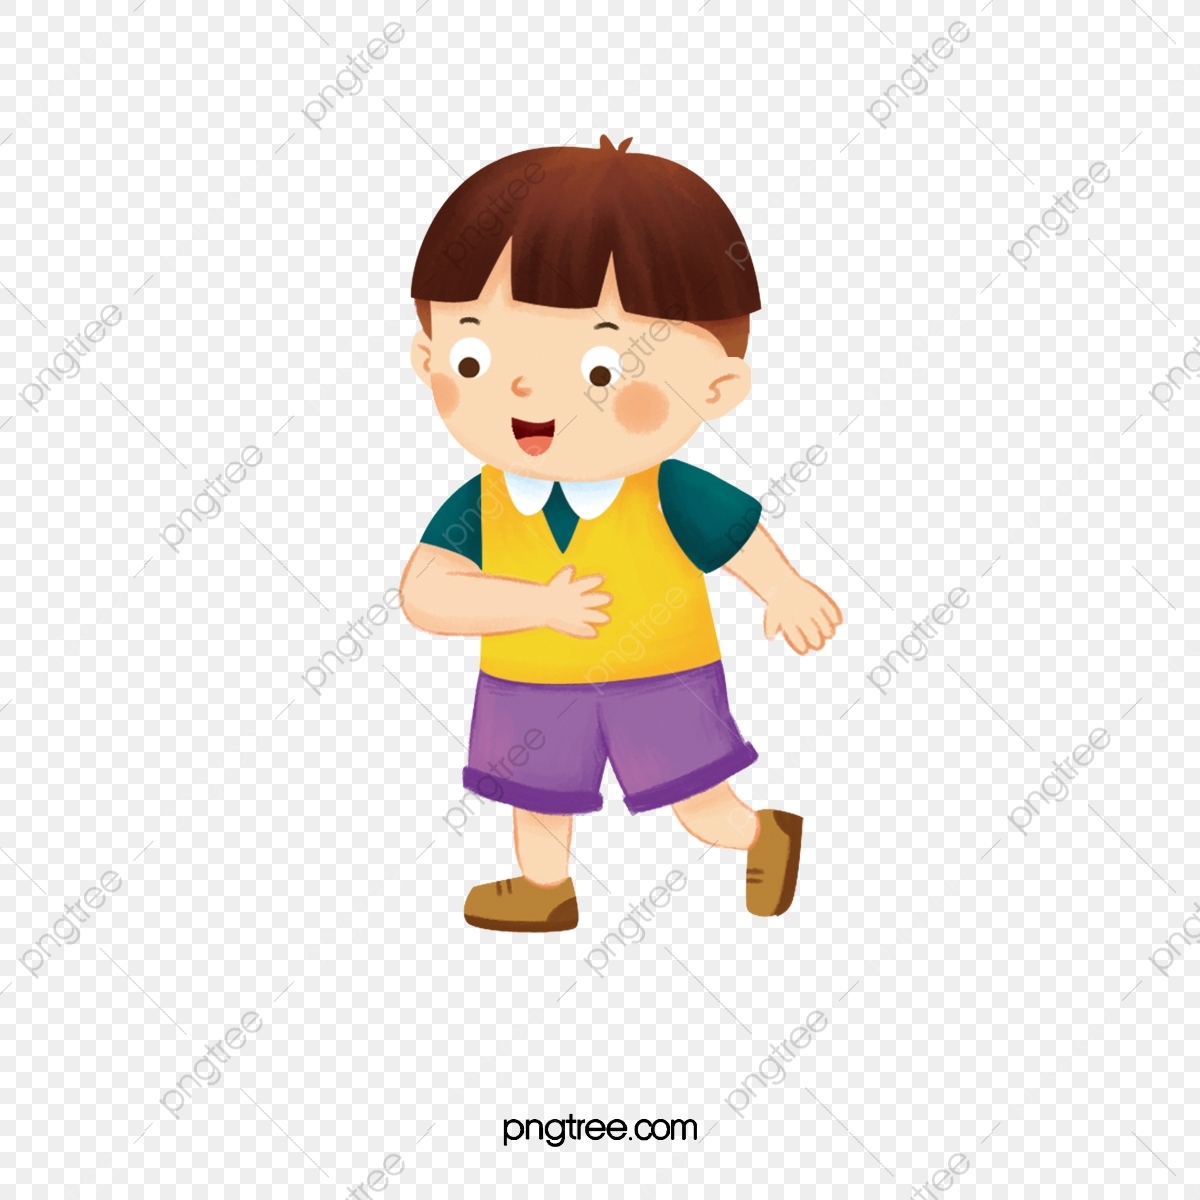 Cute Big Eyes Boy Schoolboy Lovely Big Eyes Boy Png Transparent